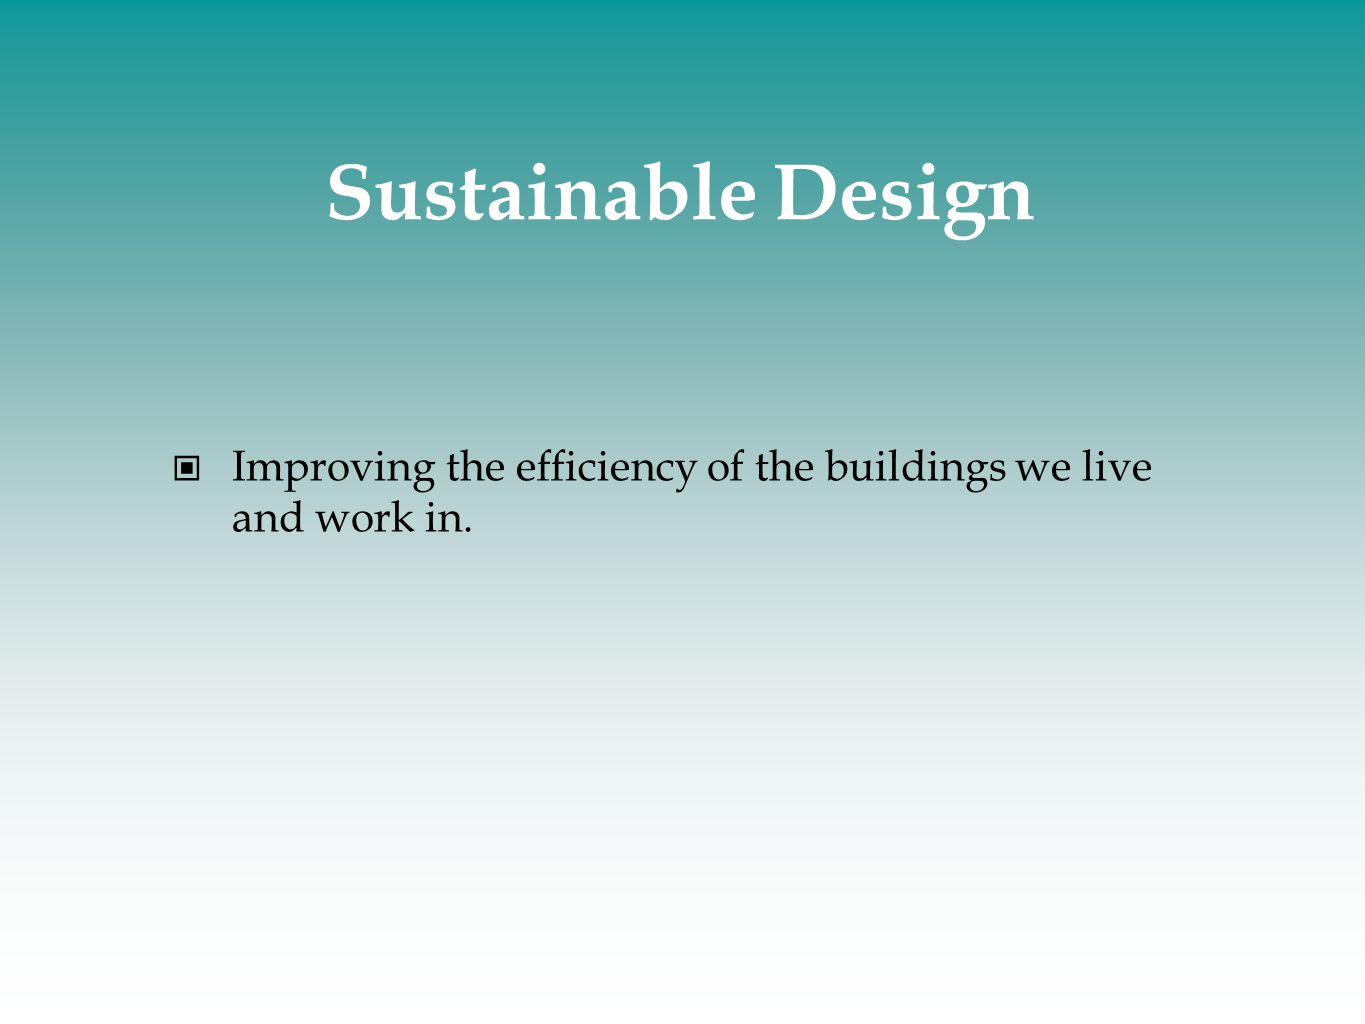 Sustainable Design Improving the efficiency of the buildings we live and work in.